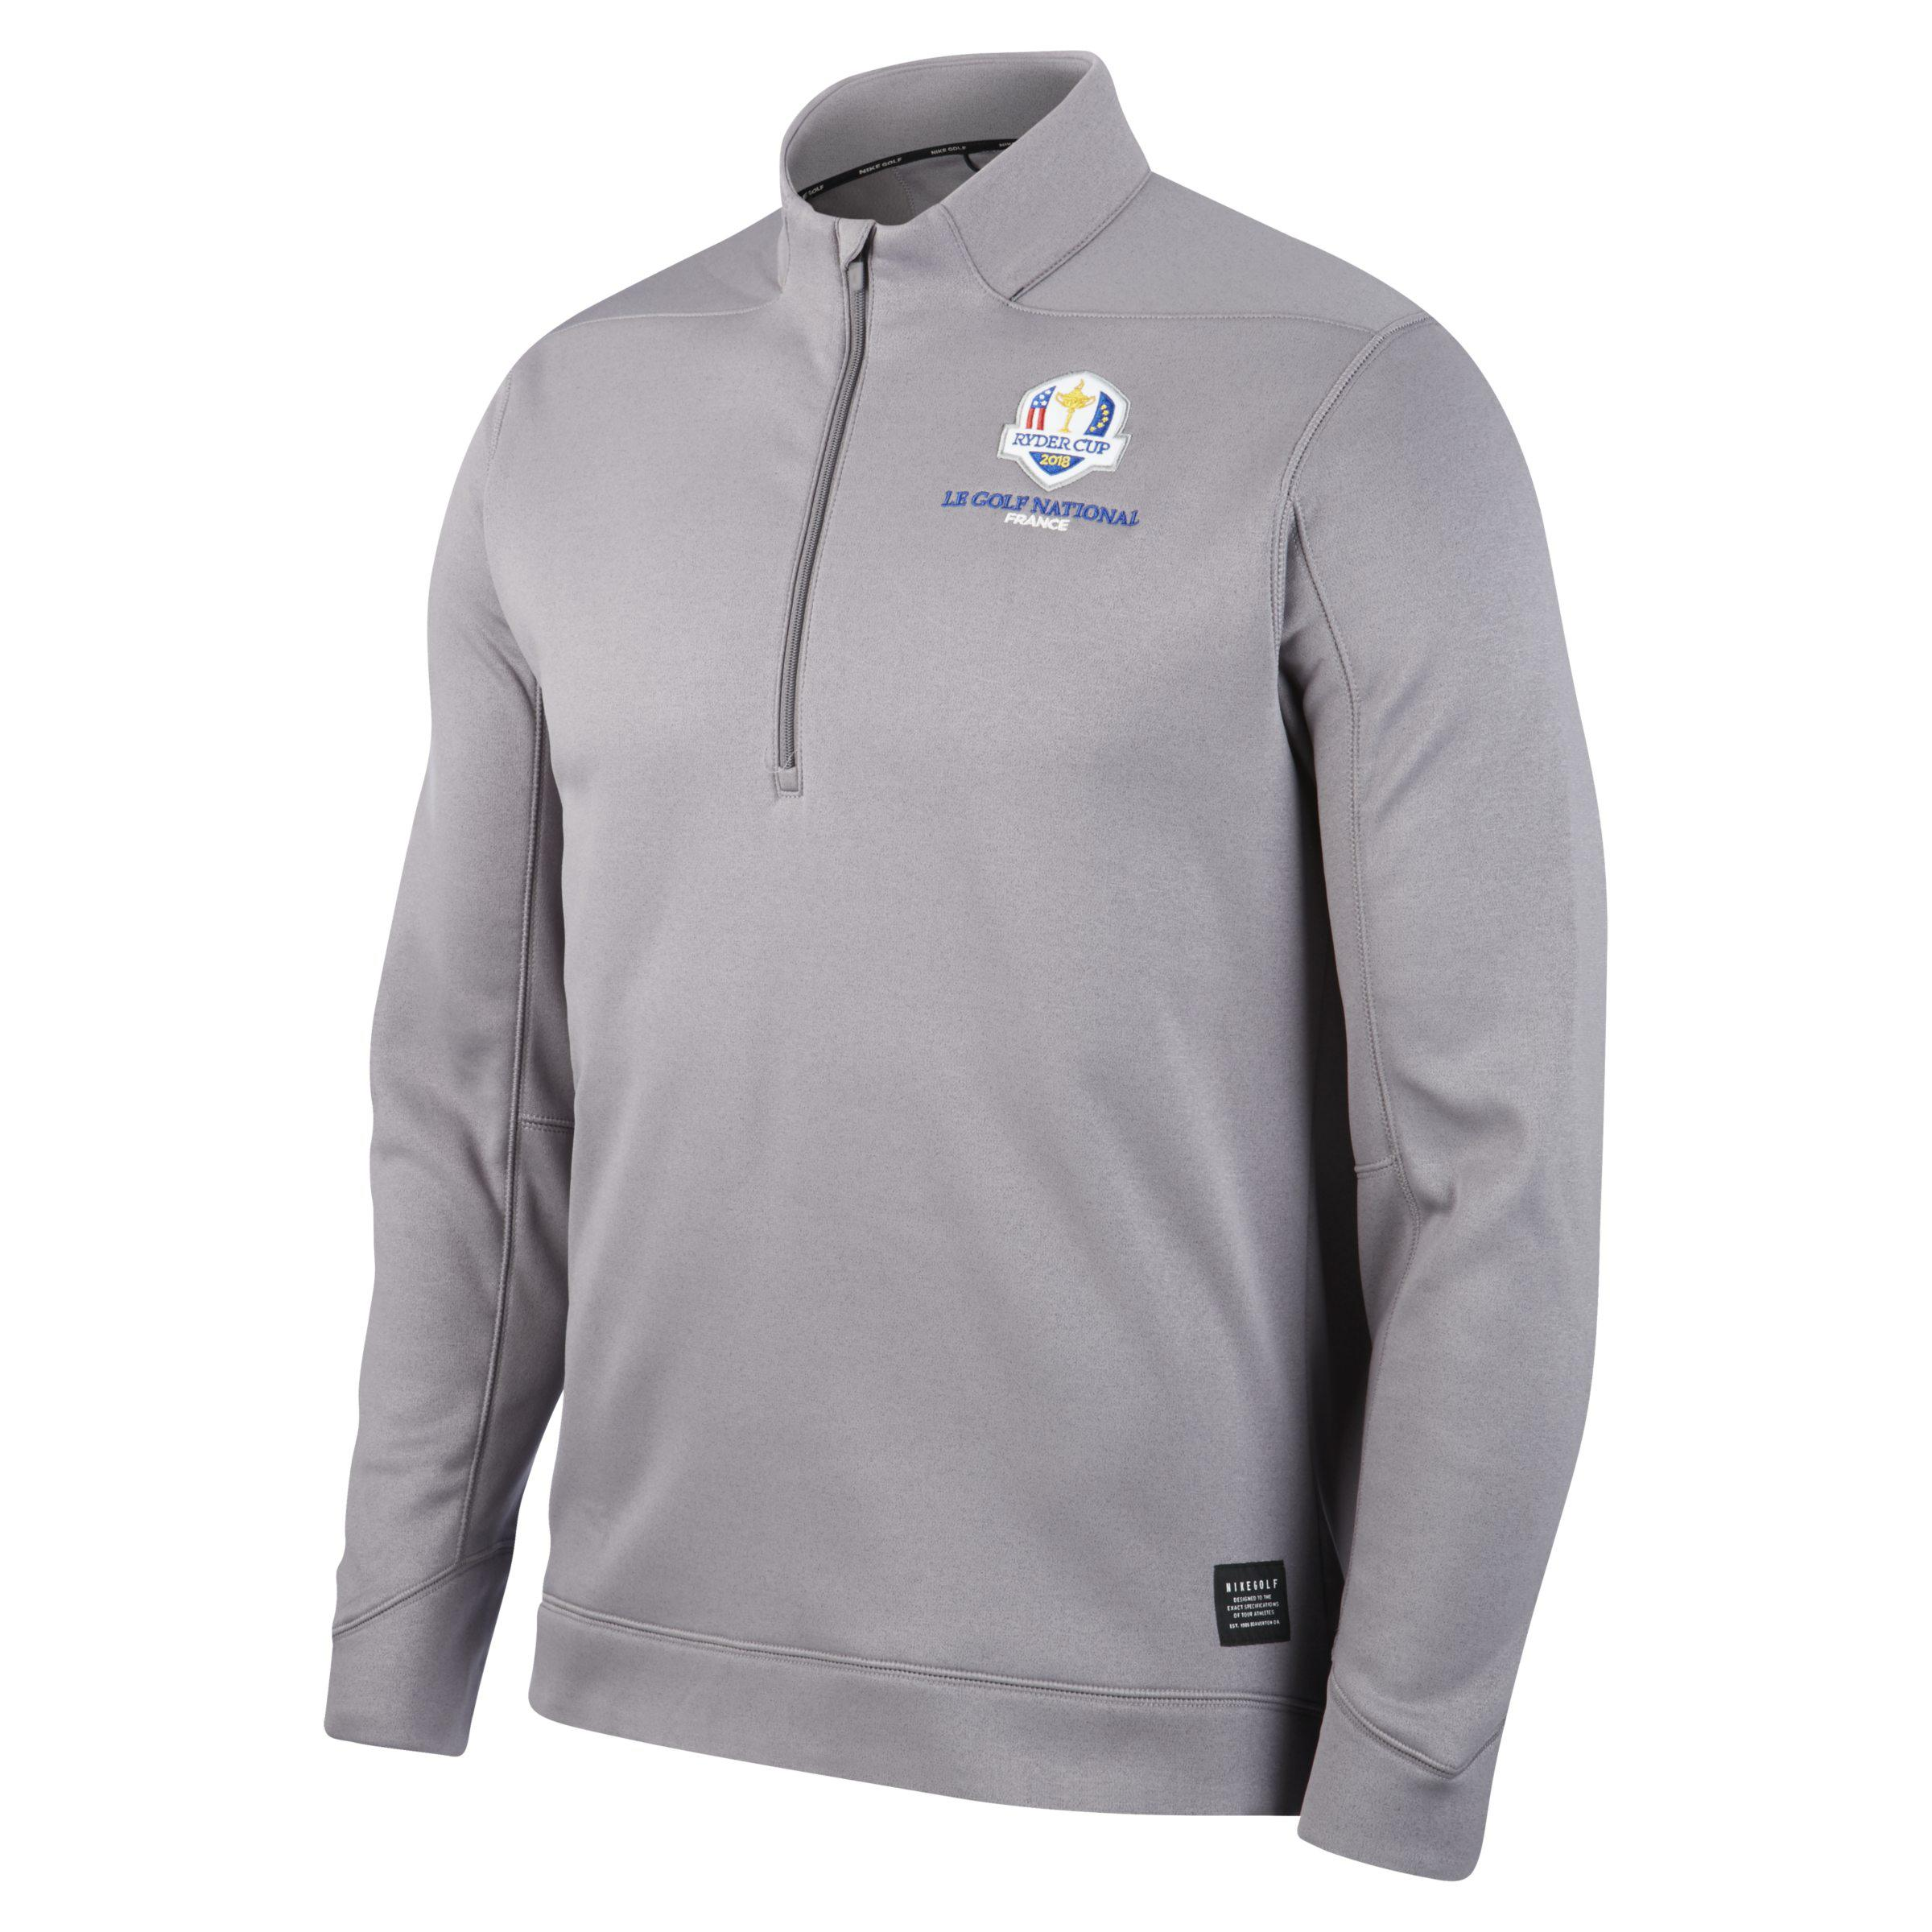 half off e2e7d 9f7b5 Nike Therma Repel Ryder Cup 1/2-zip Golf Top in Grey (Gray ...